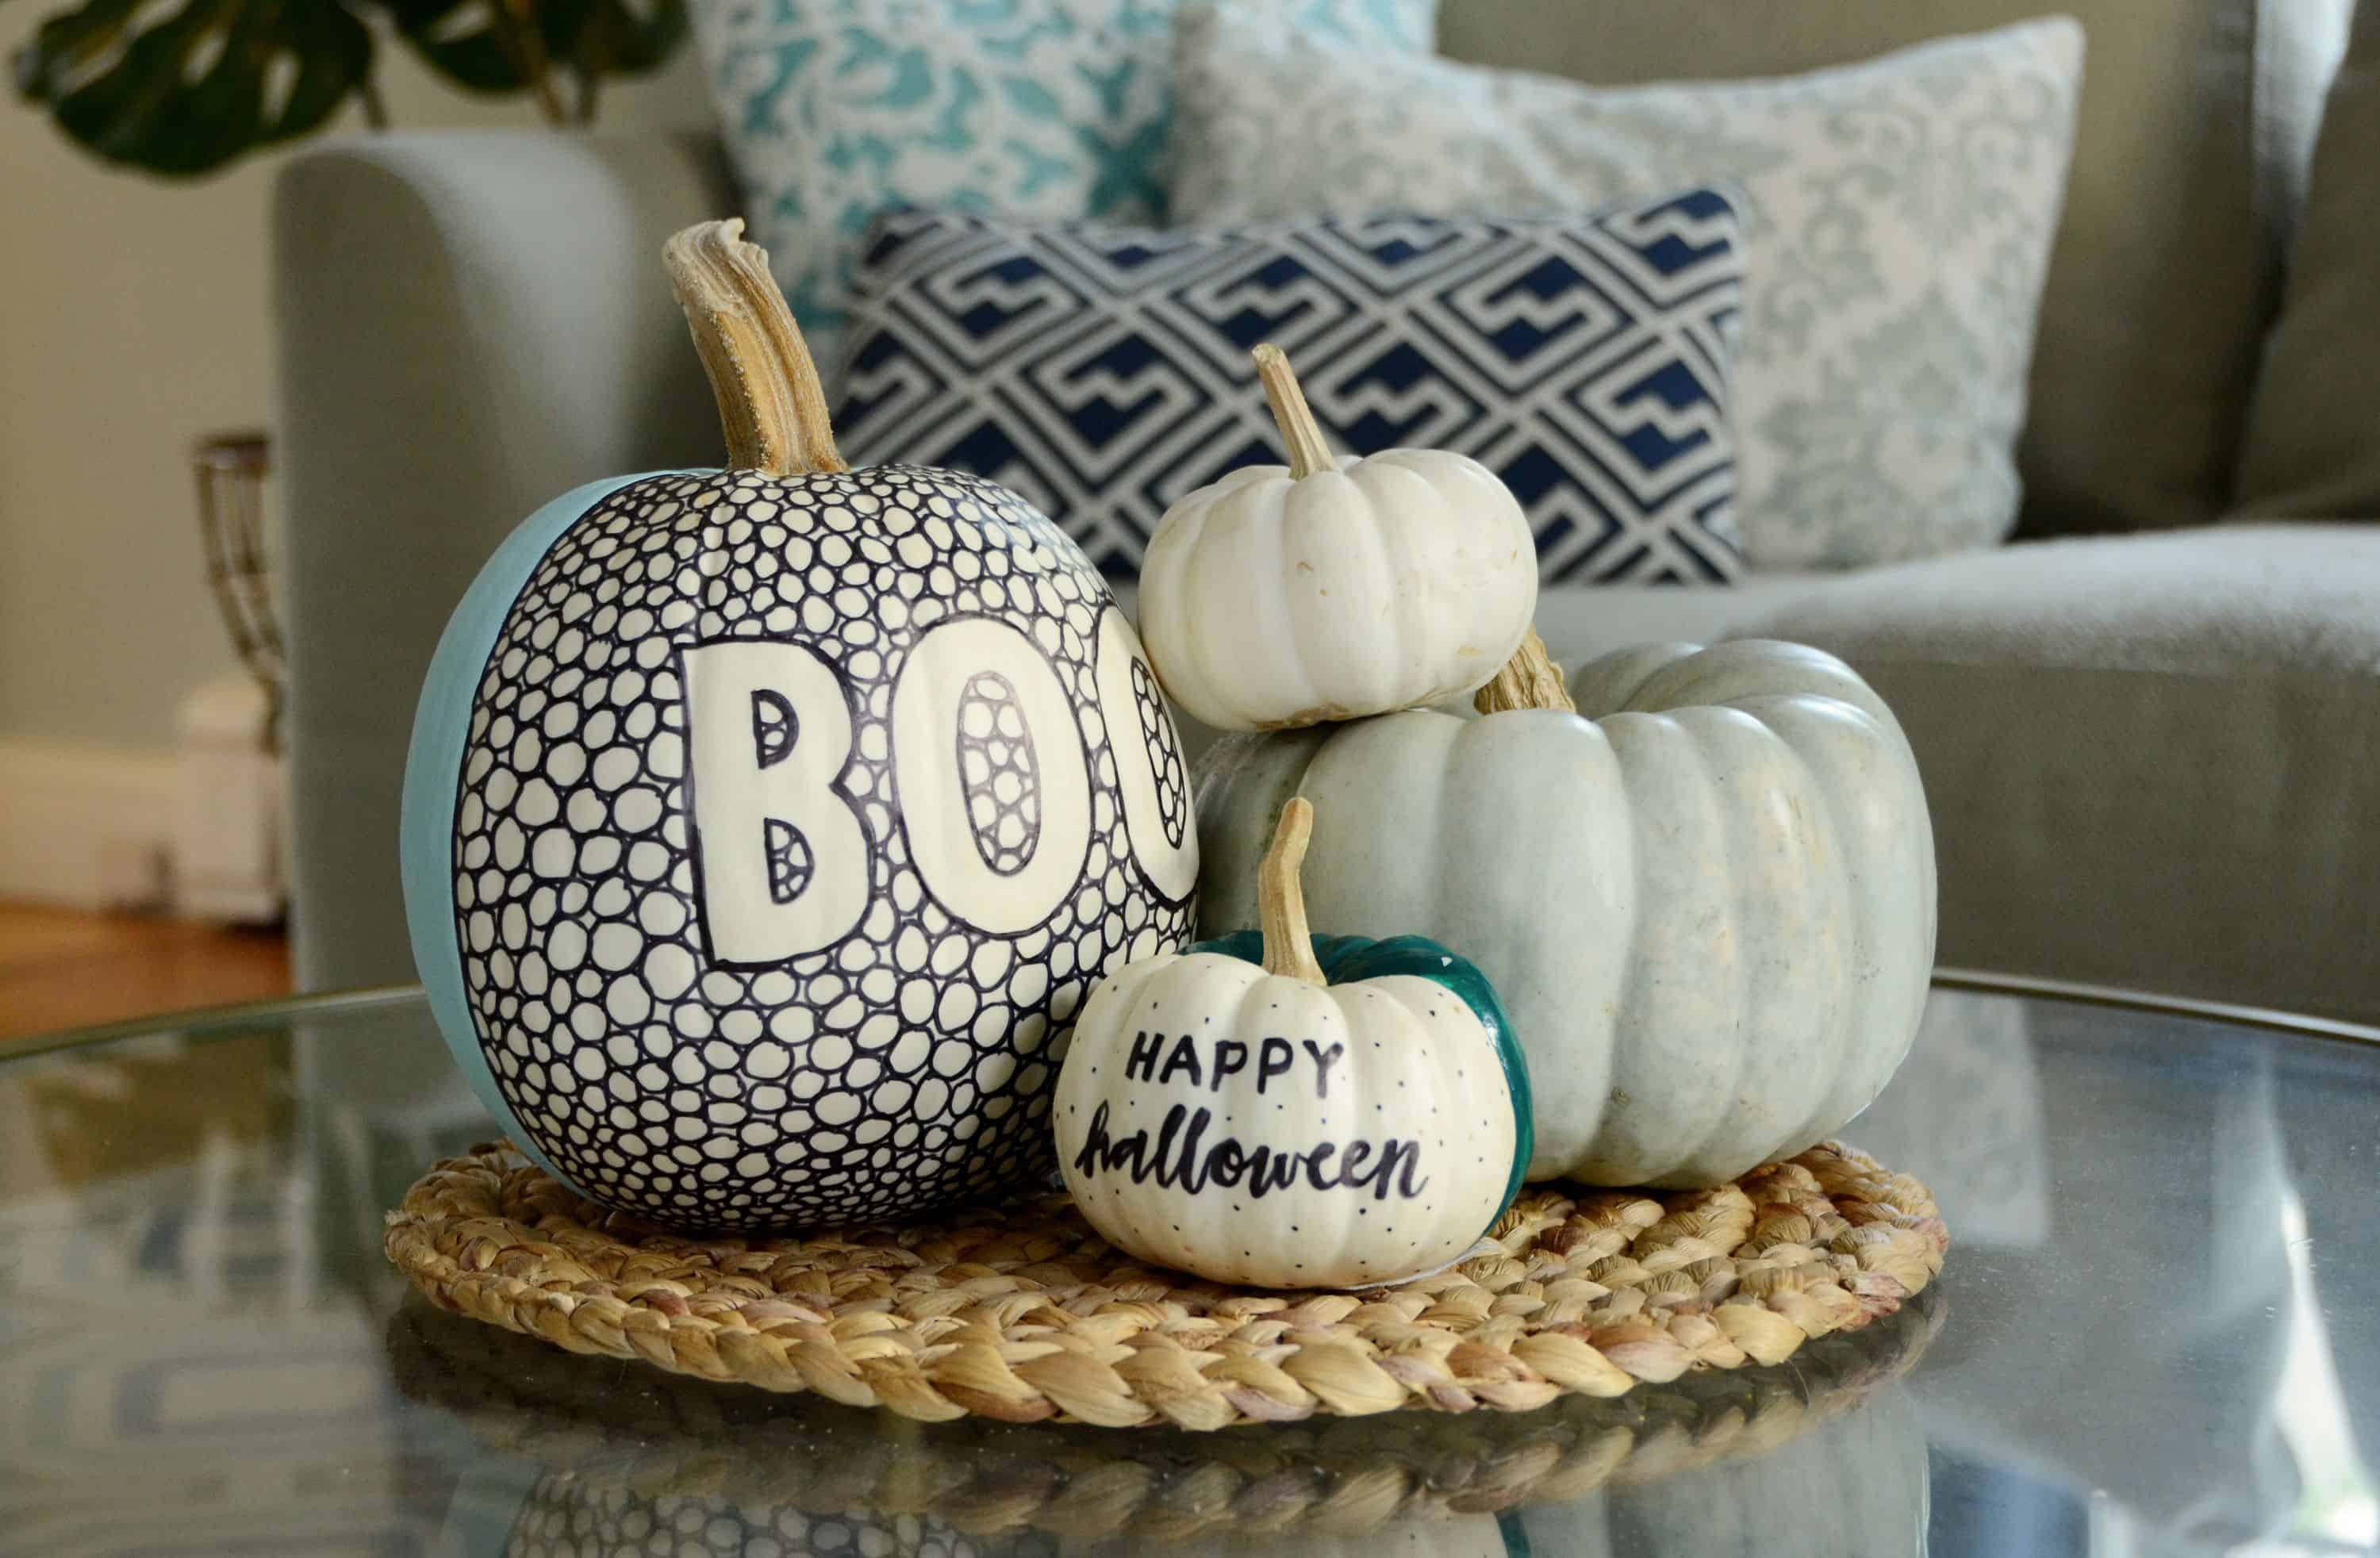 Diy black and white patterned pumpkin